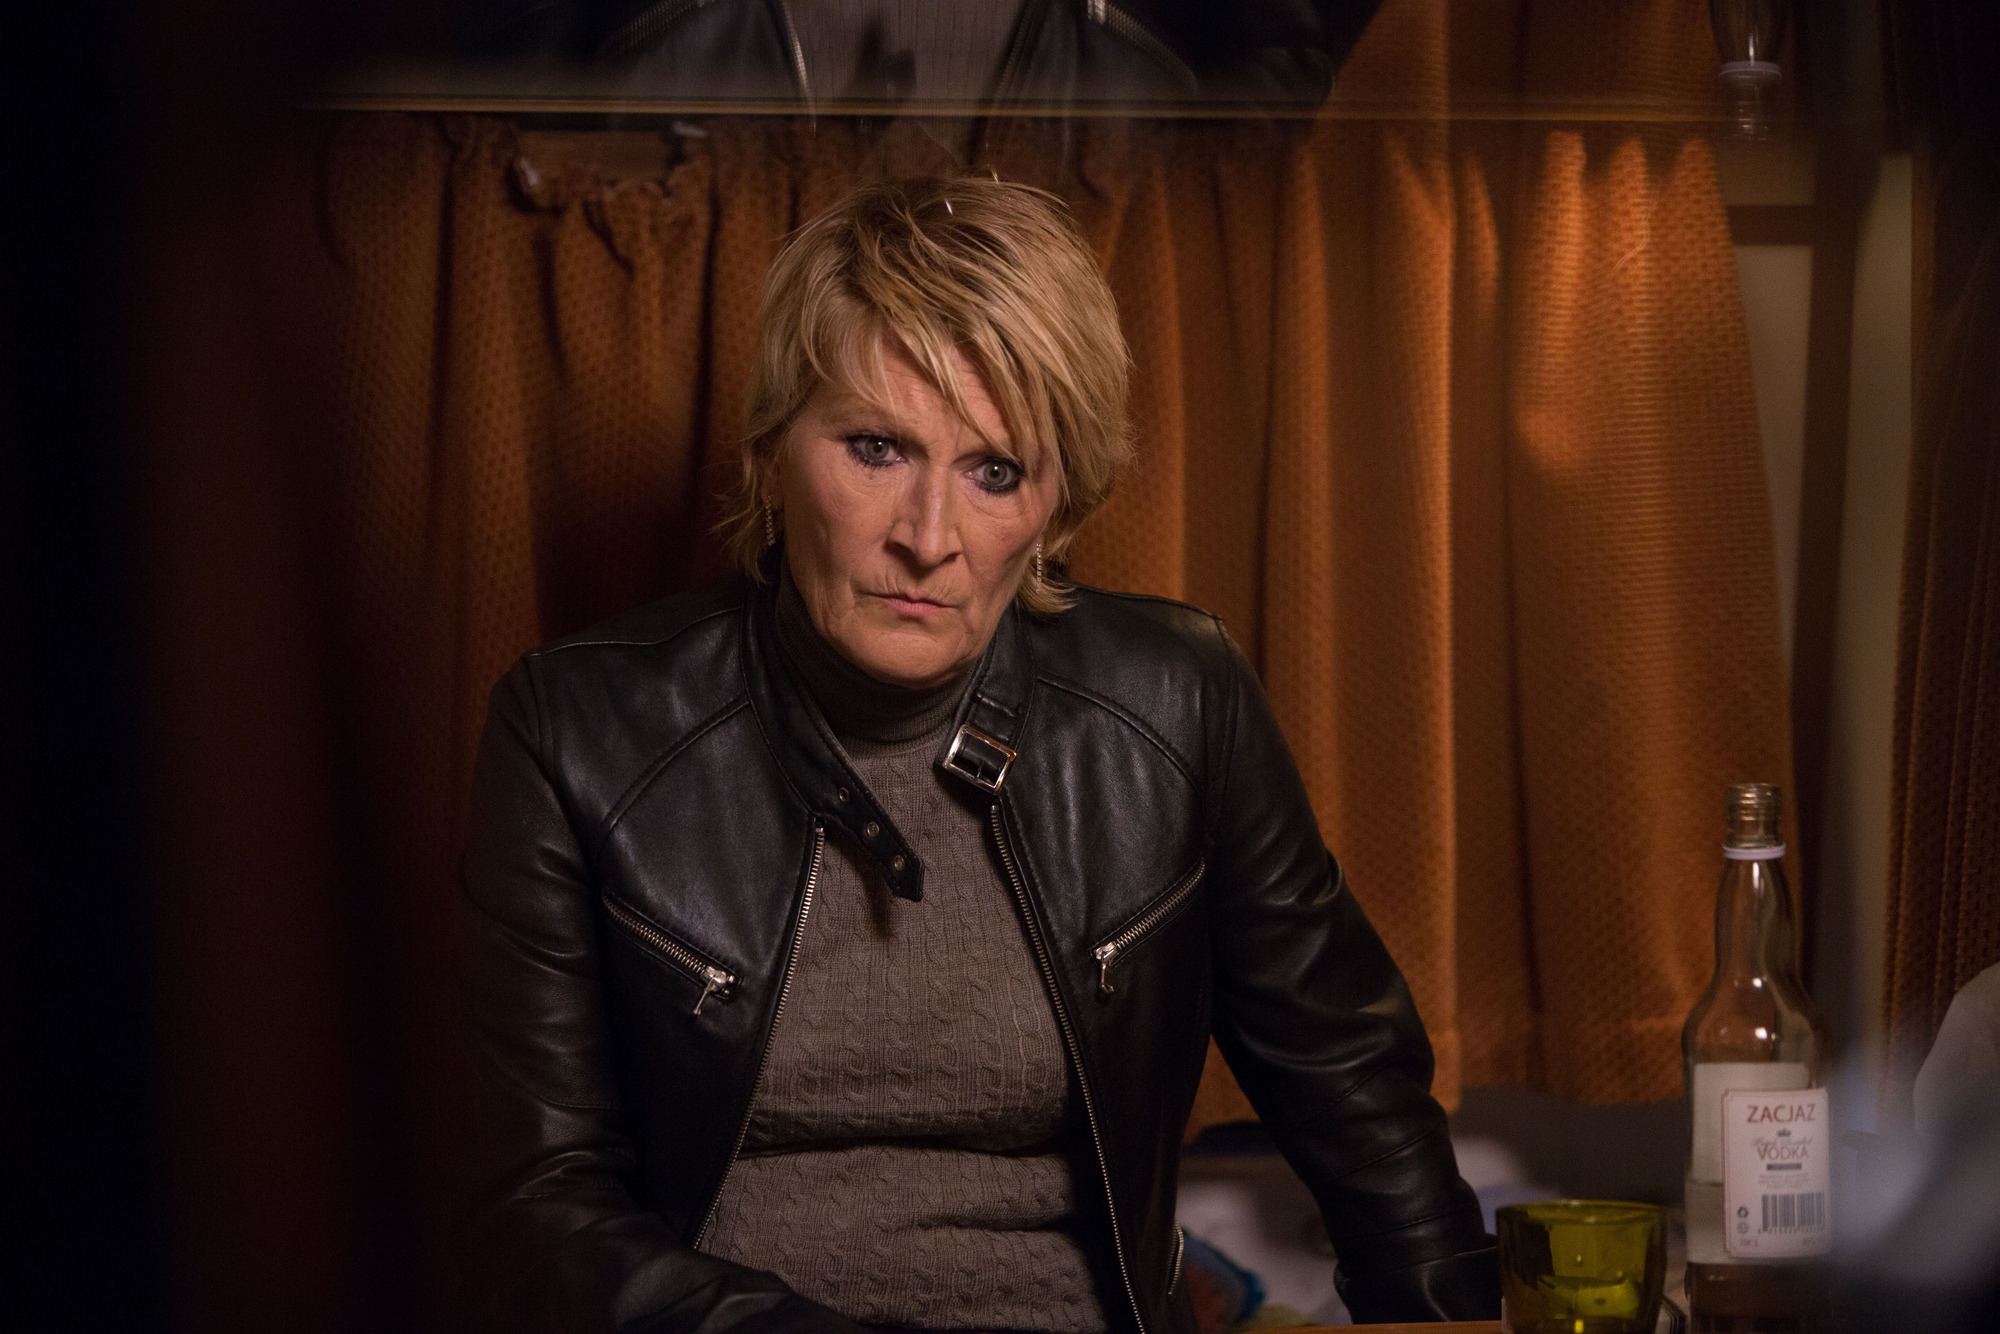 EastEnders, Shirley tells Mick and Dean she's not coming home. Shirley Carter (LINDA HENRY) - (C) BBC